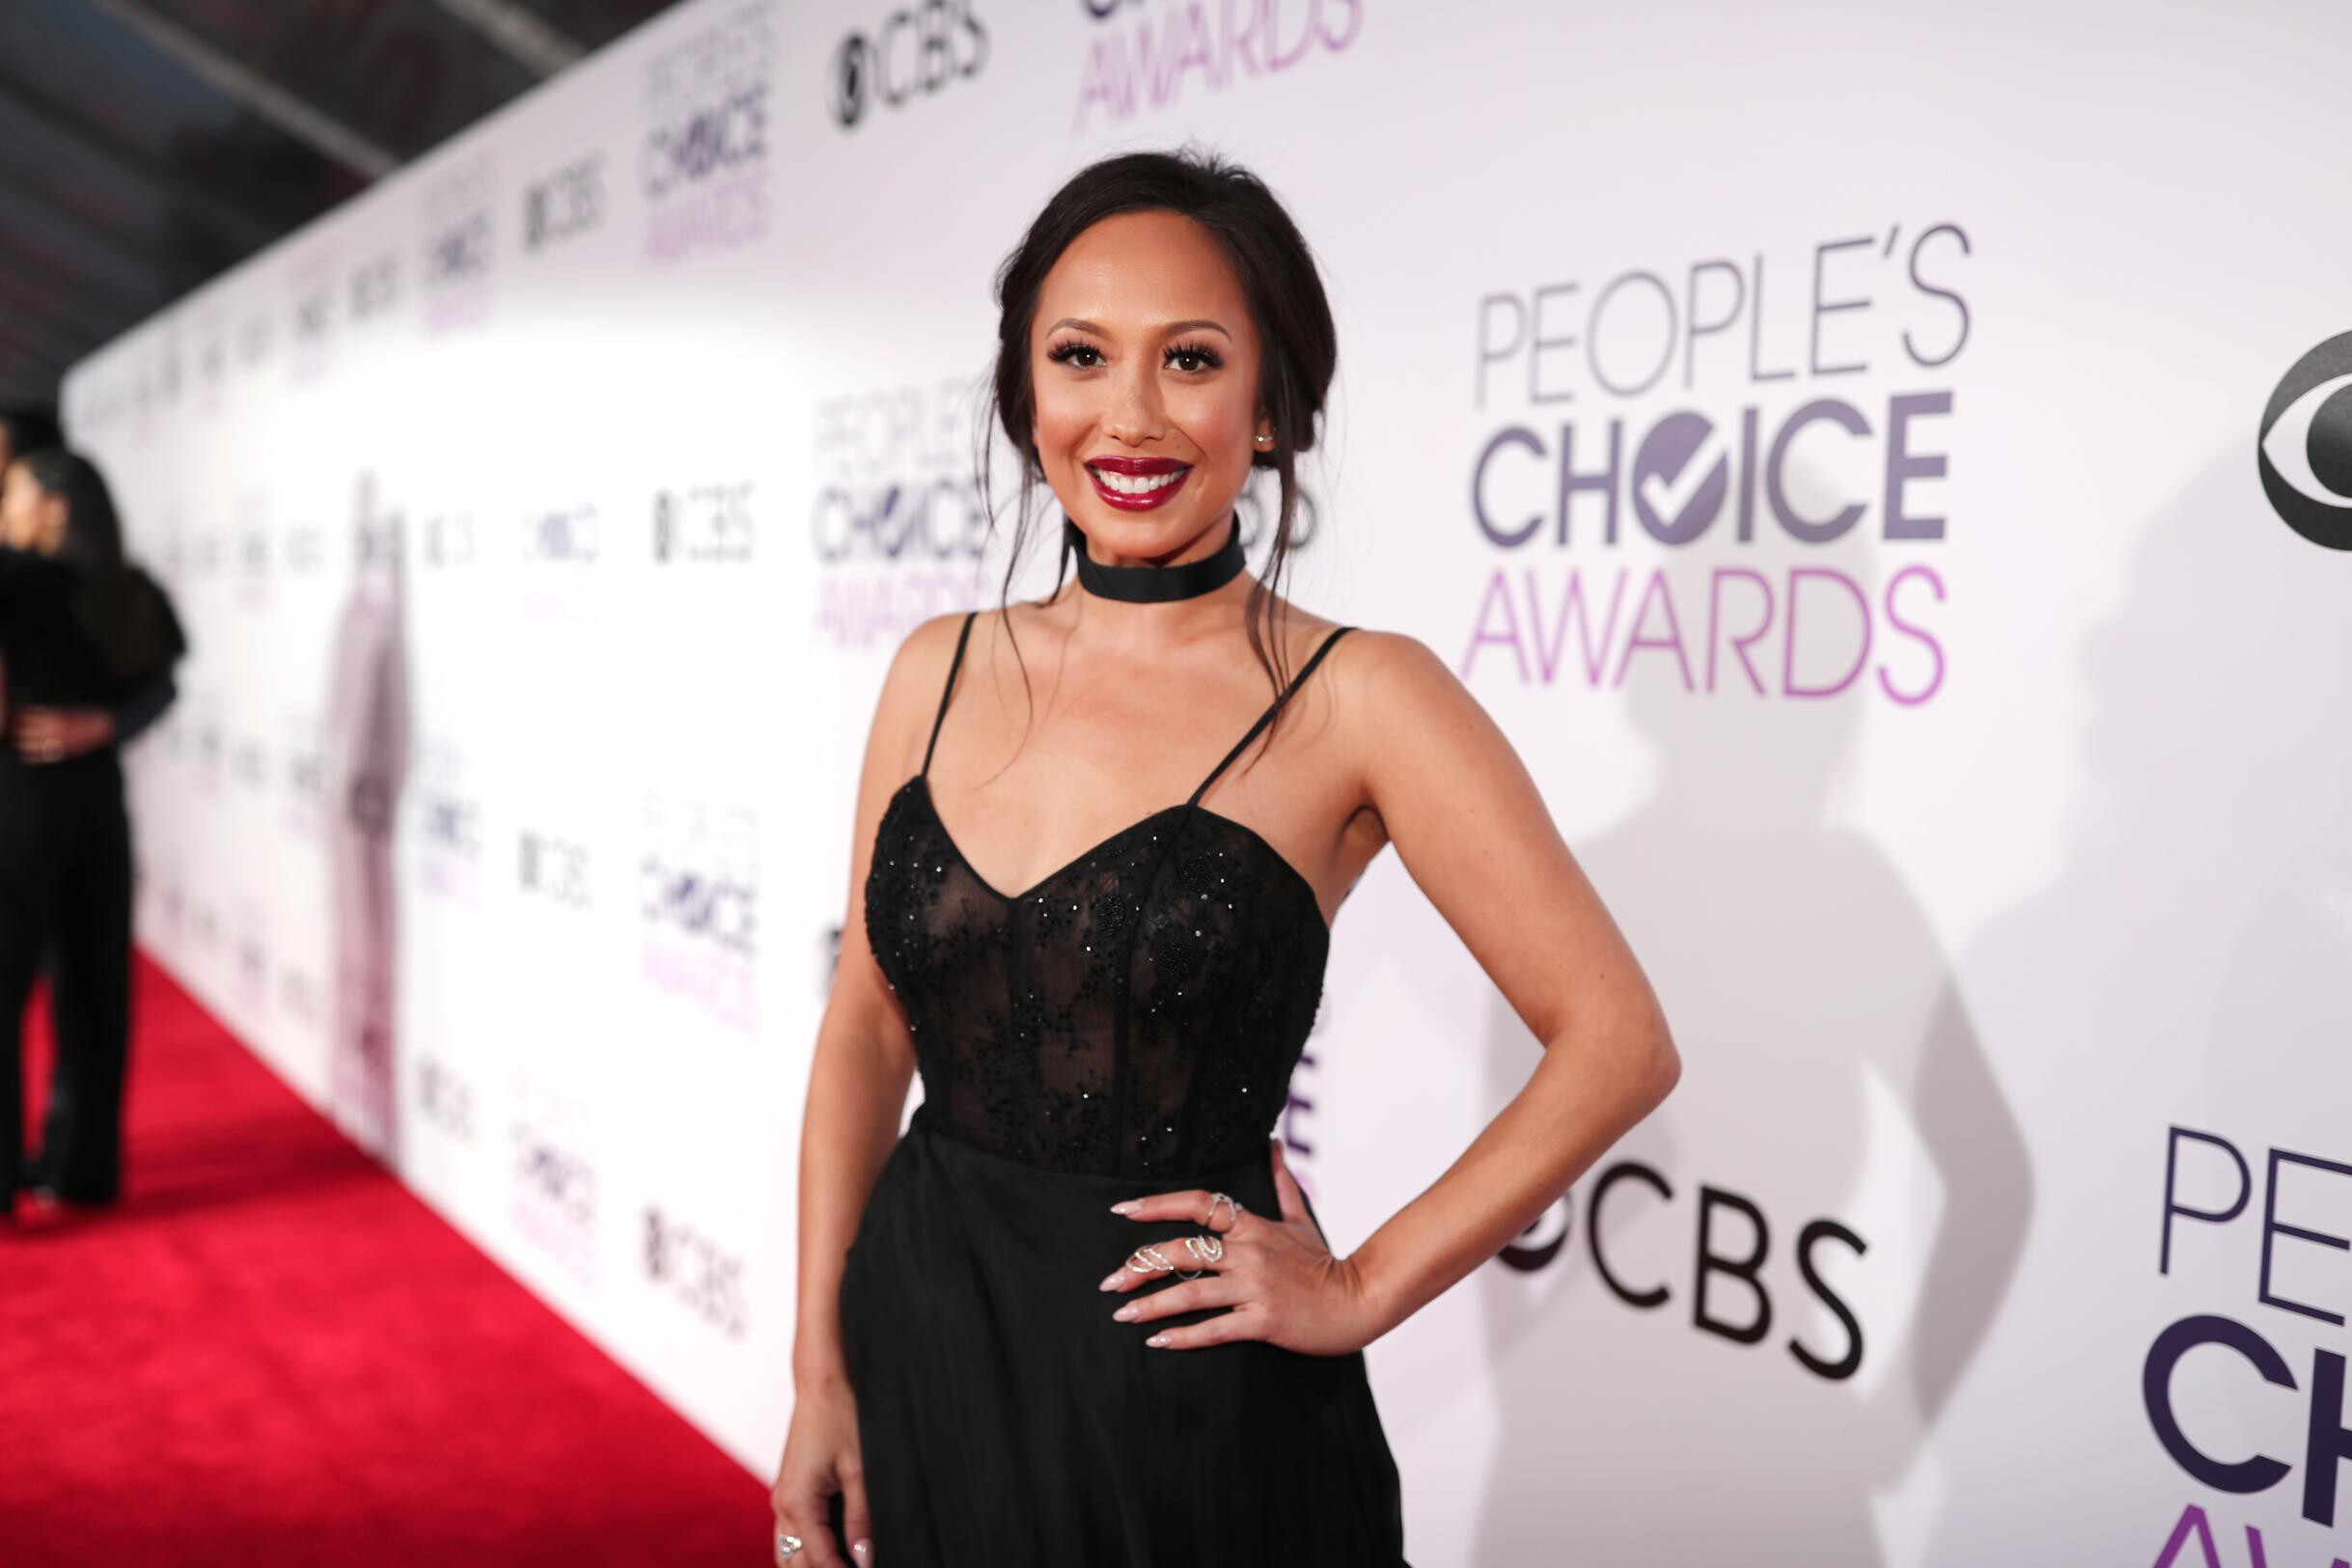 <i>Christopher Polk/Getty Images</i><br/>Cheryl Burke has shared she has tested positive for Covid-19.